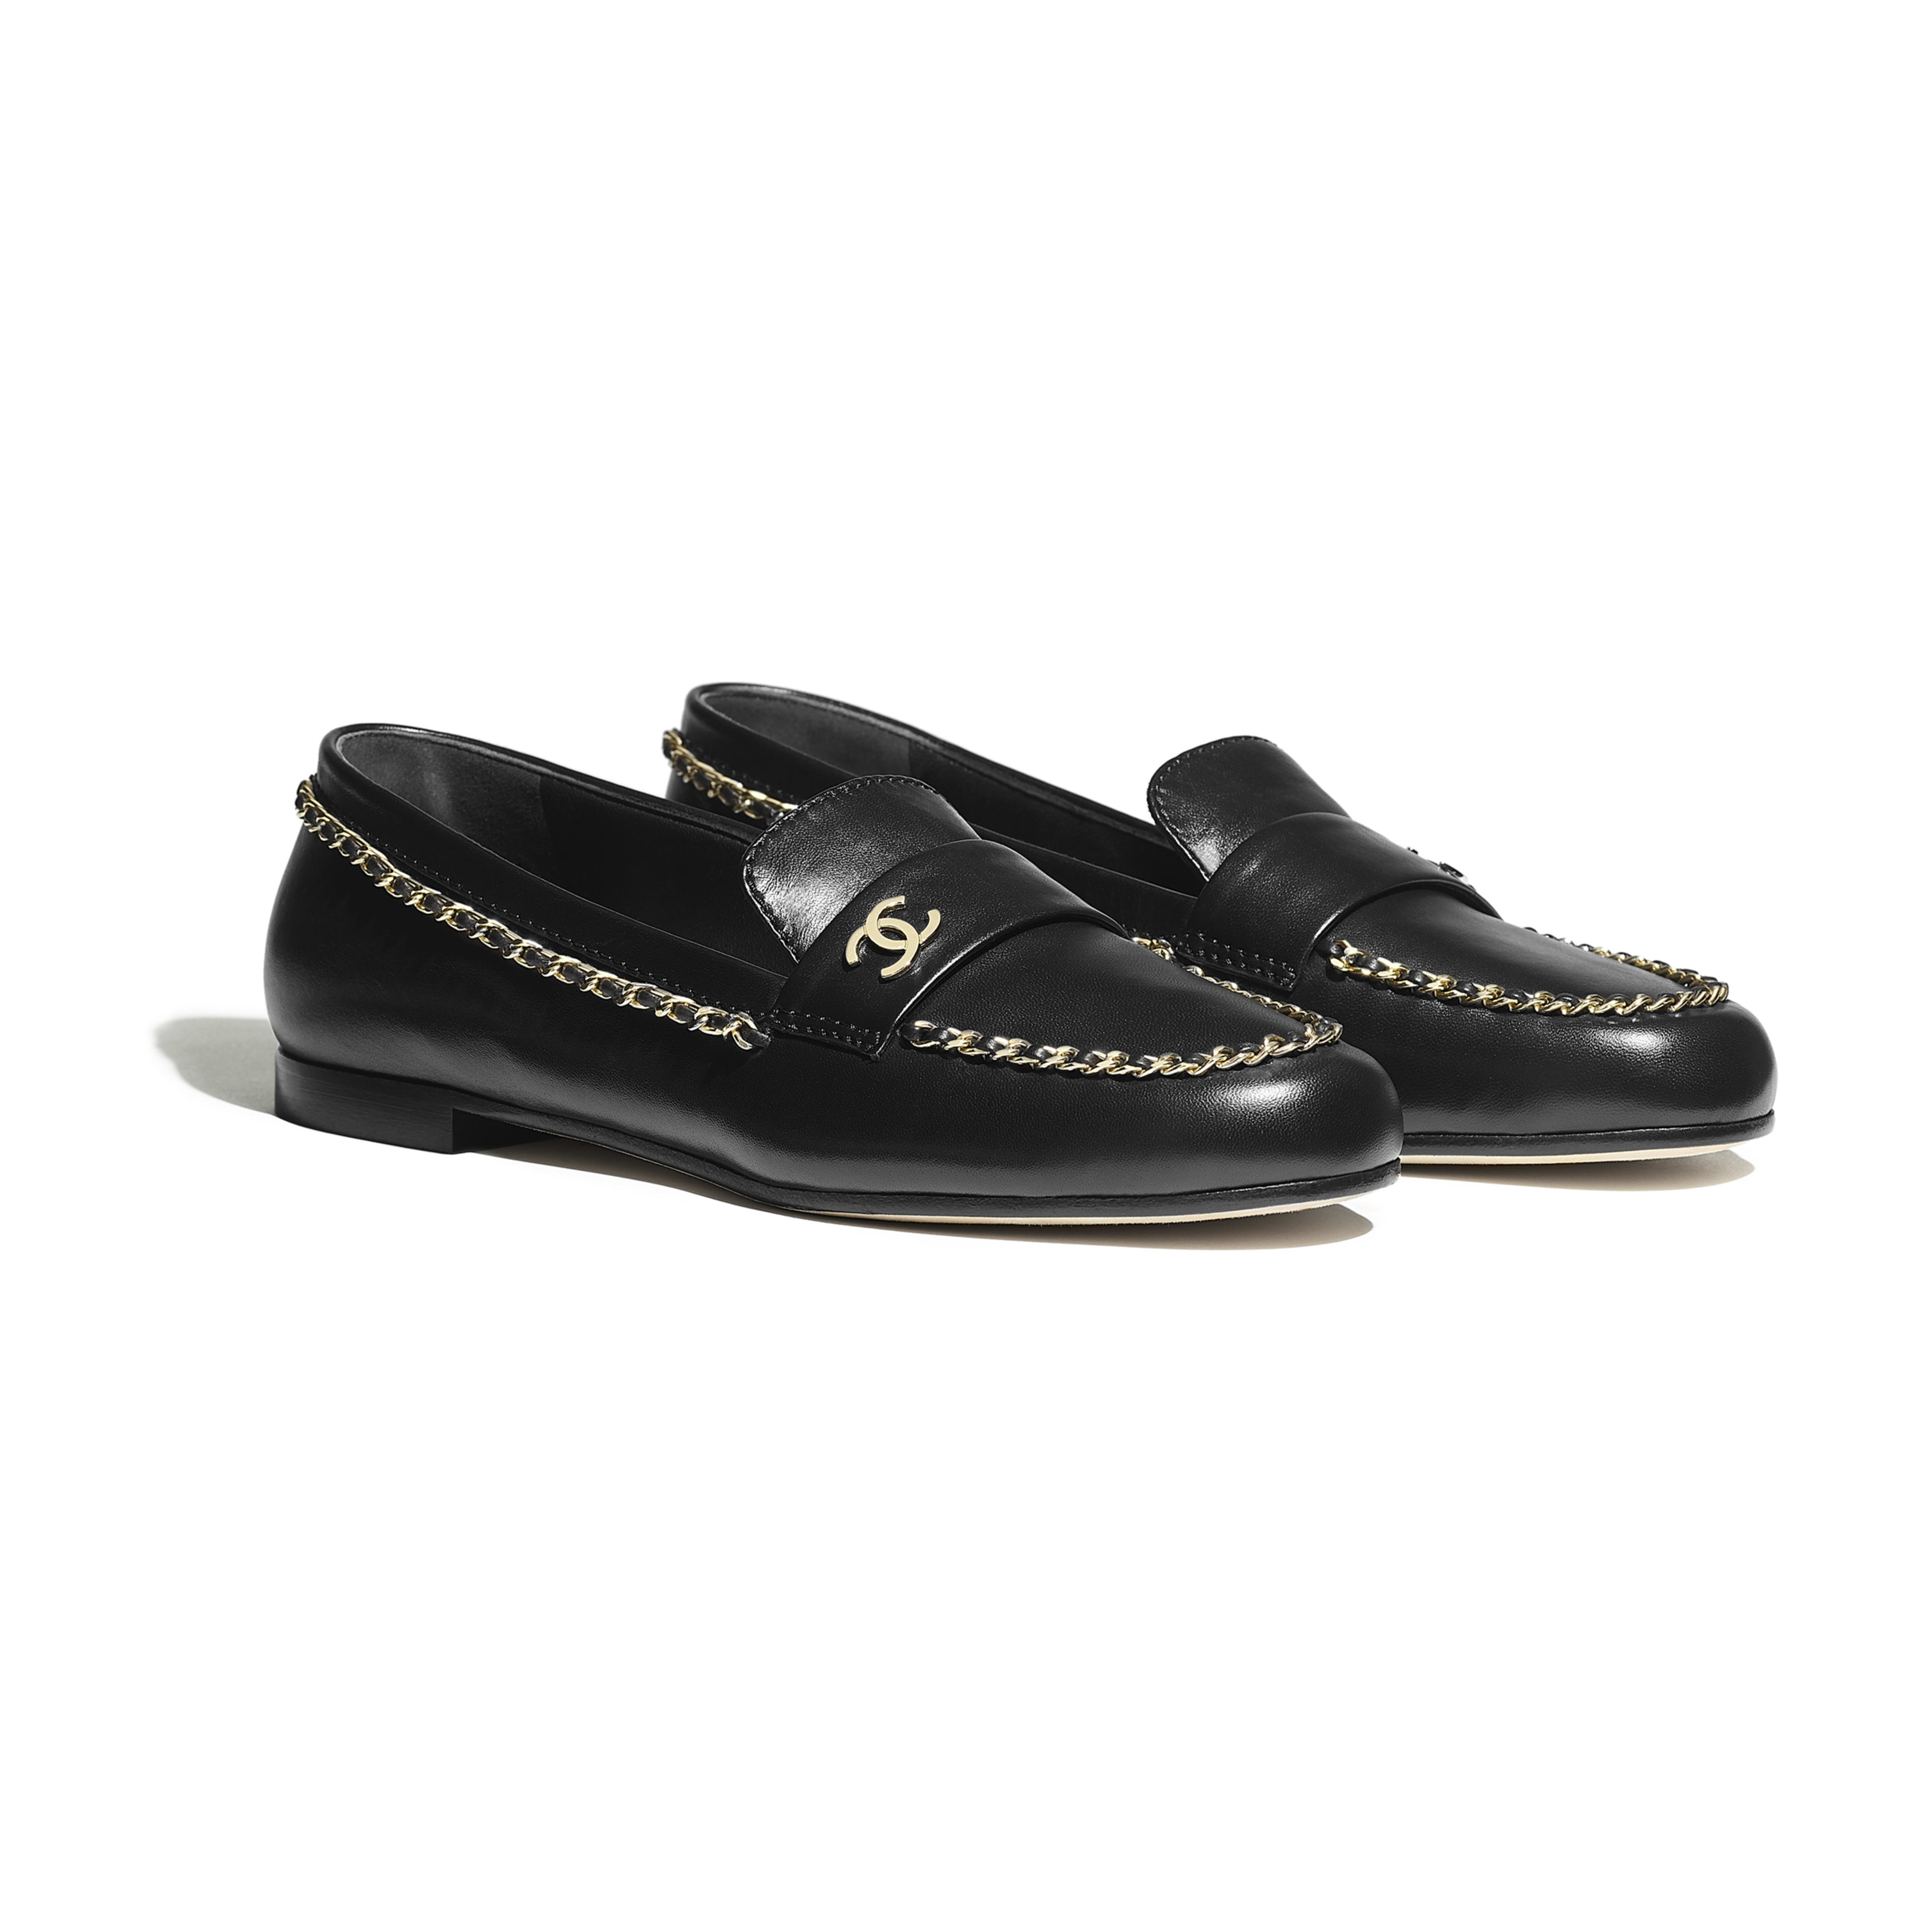 Loafers - Black - Lambskin - Alternative view - see full sized version